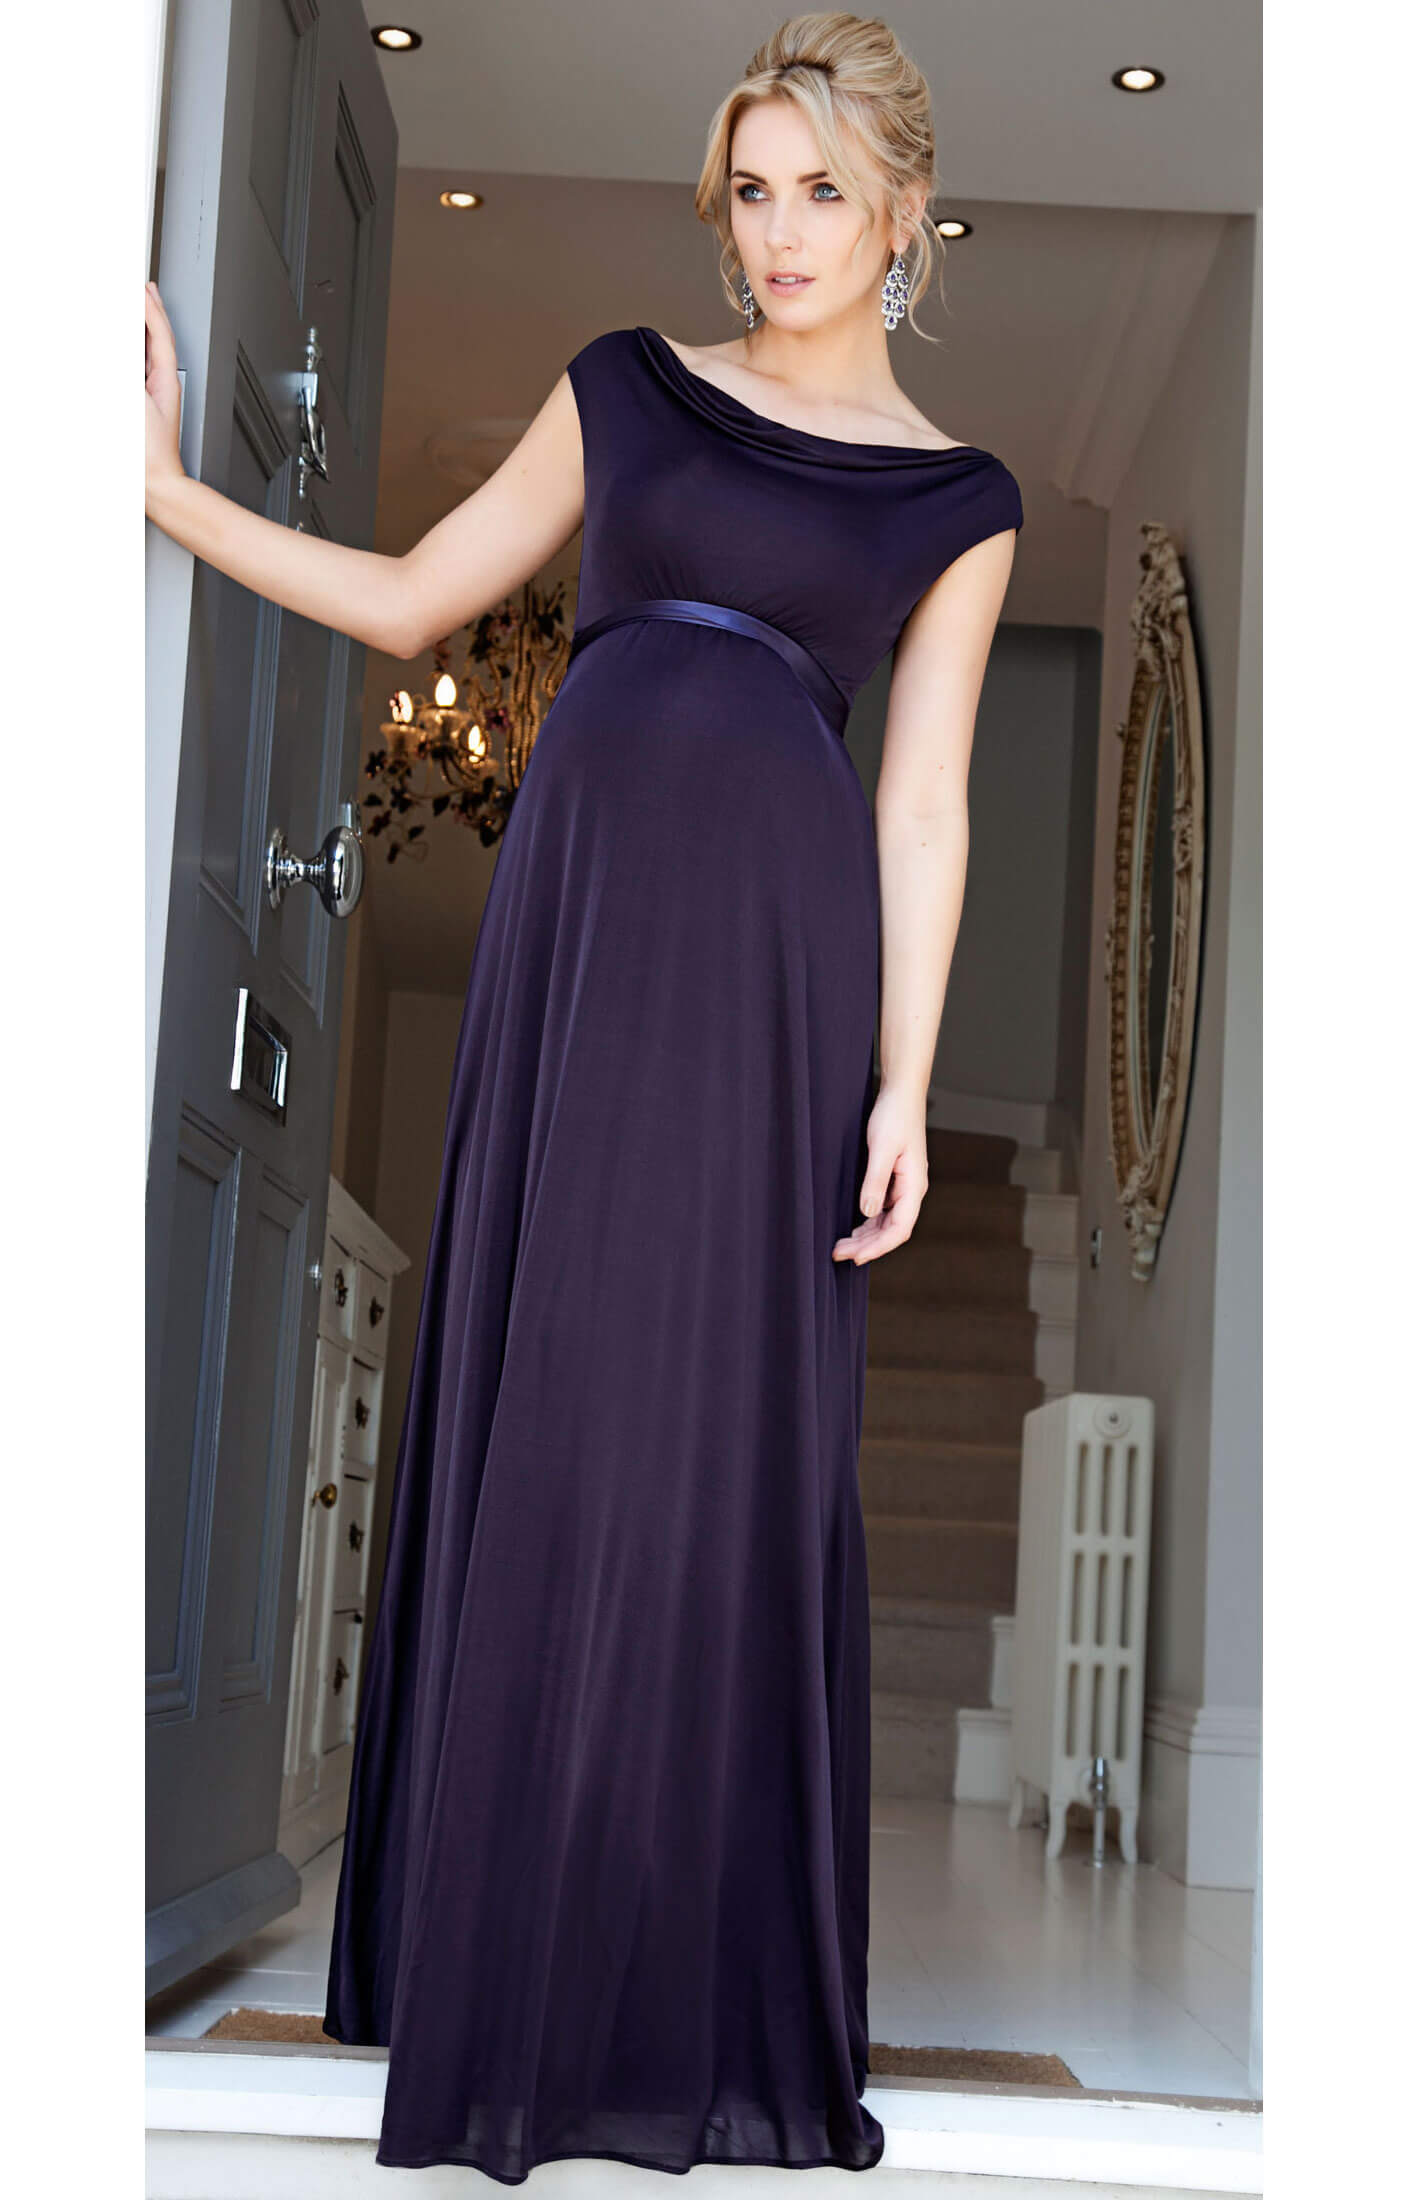 Find great deals on eBay for evening maternity dress. Shop with confidence.